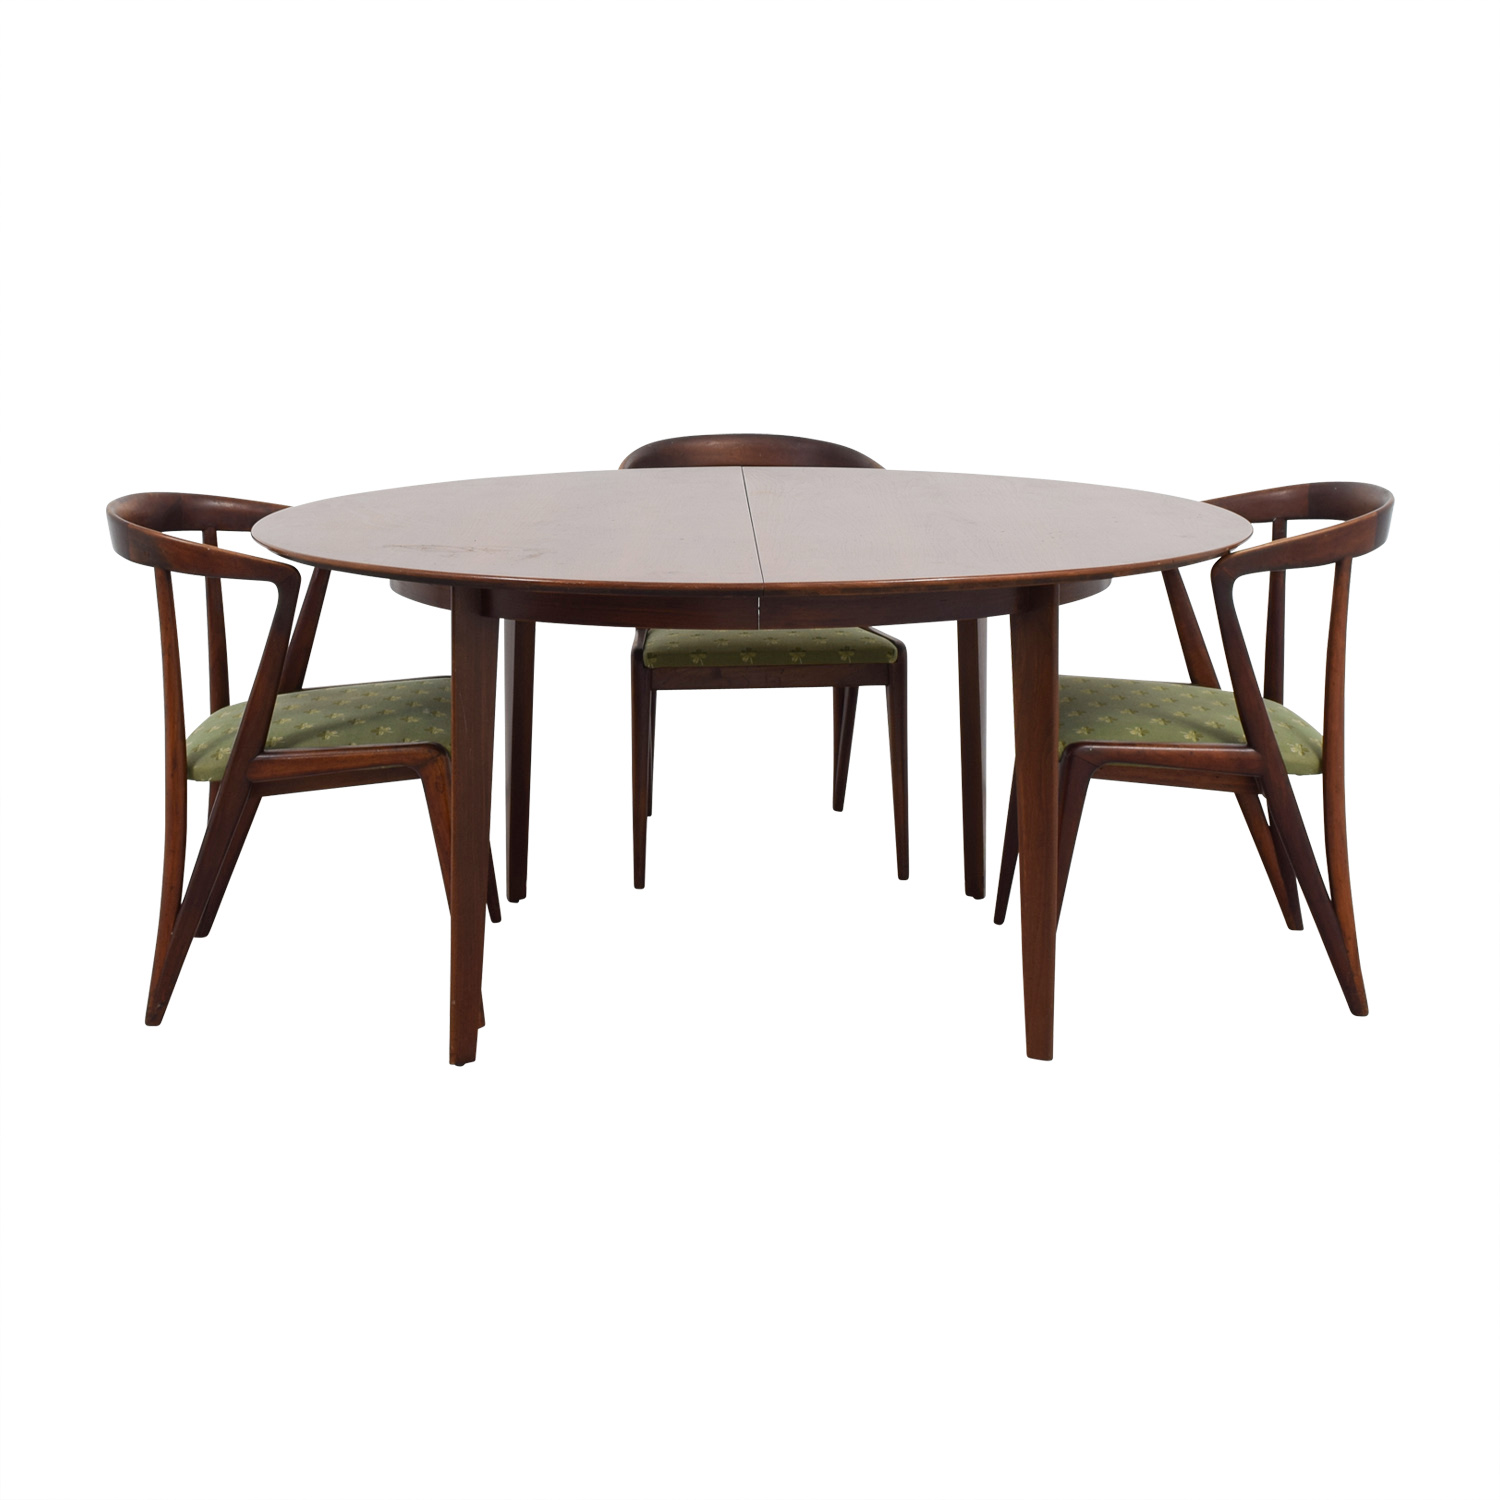 Dunbar Dunbar Mid-Century Two-Leaf Extention Dining Set price